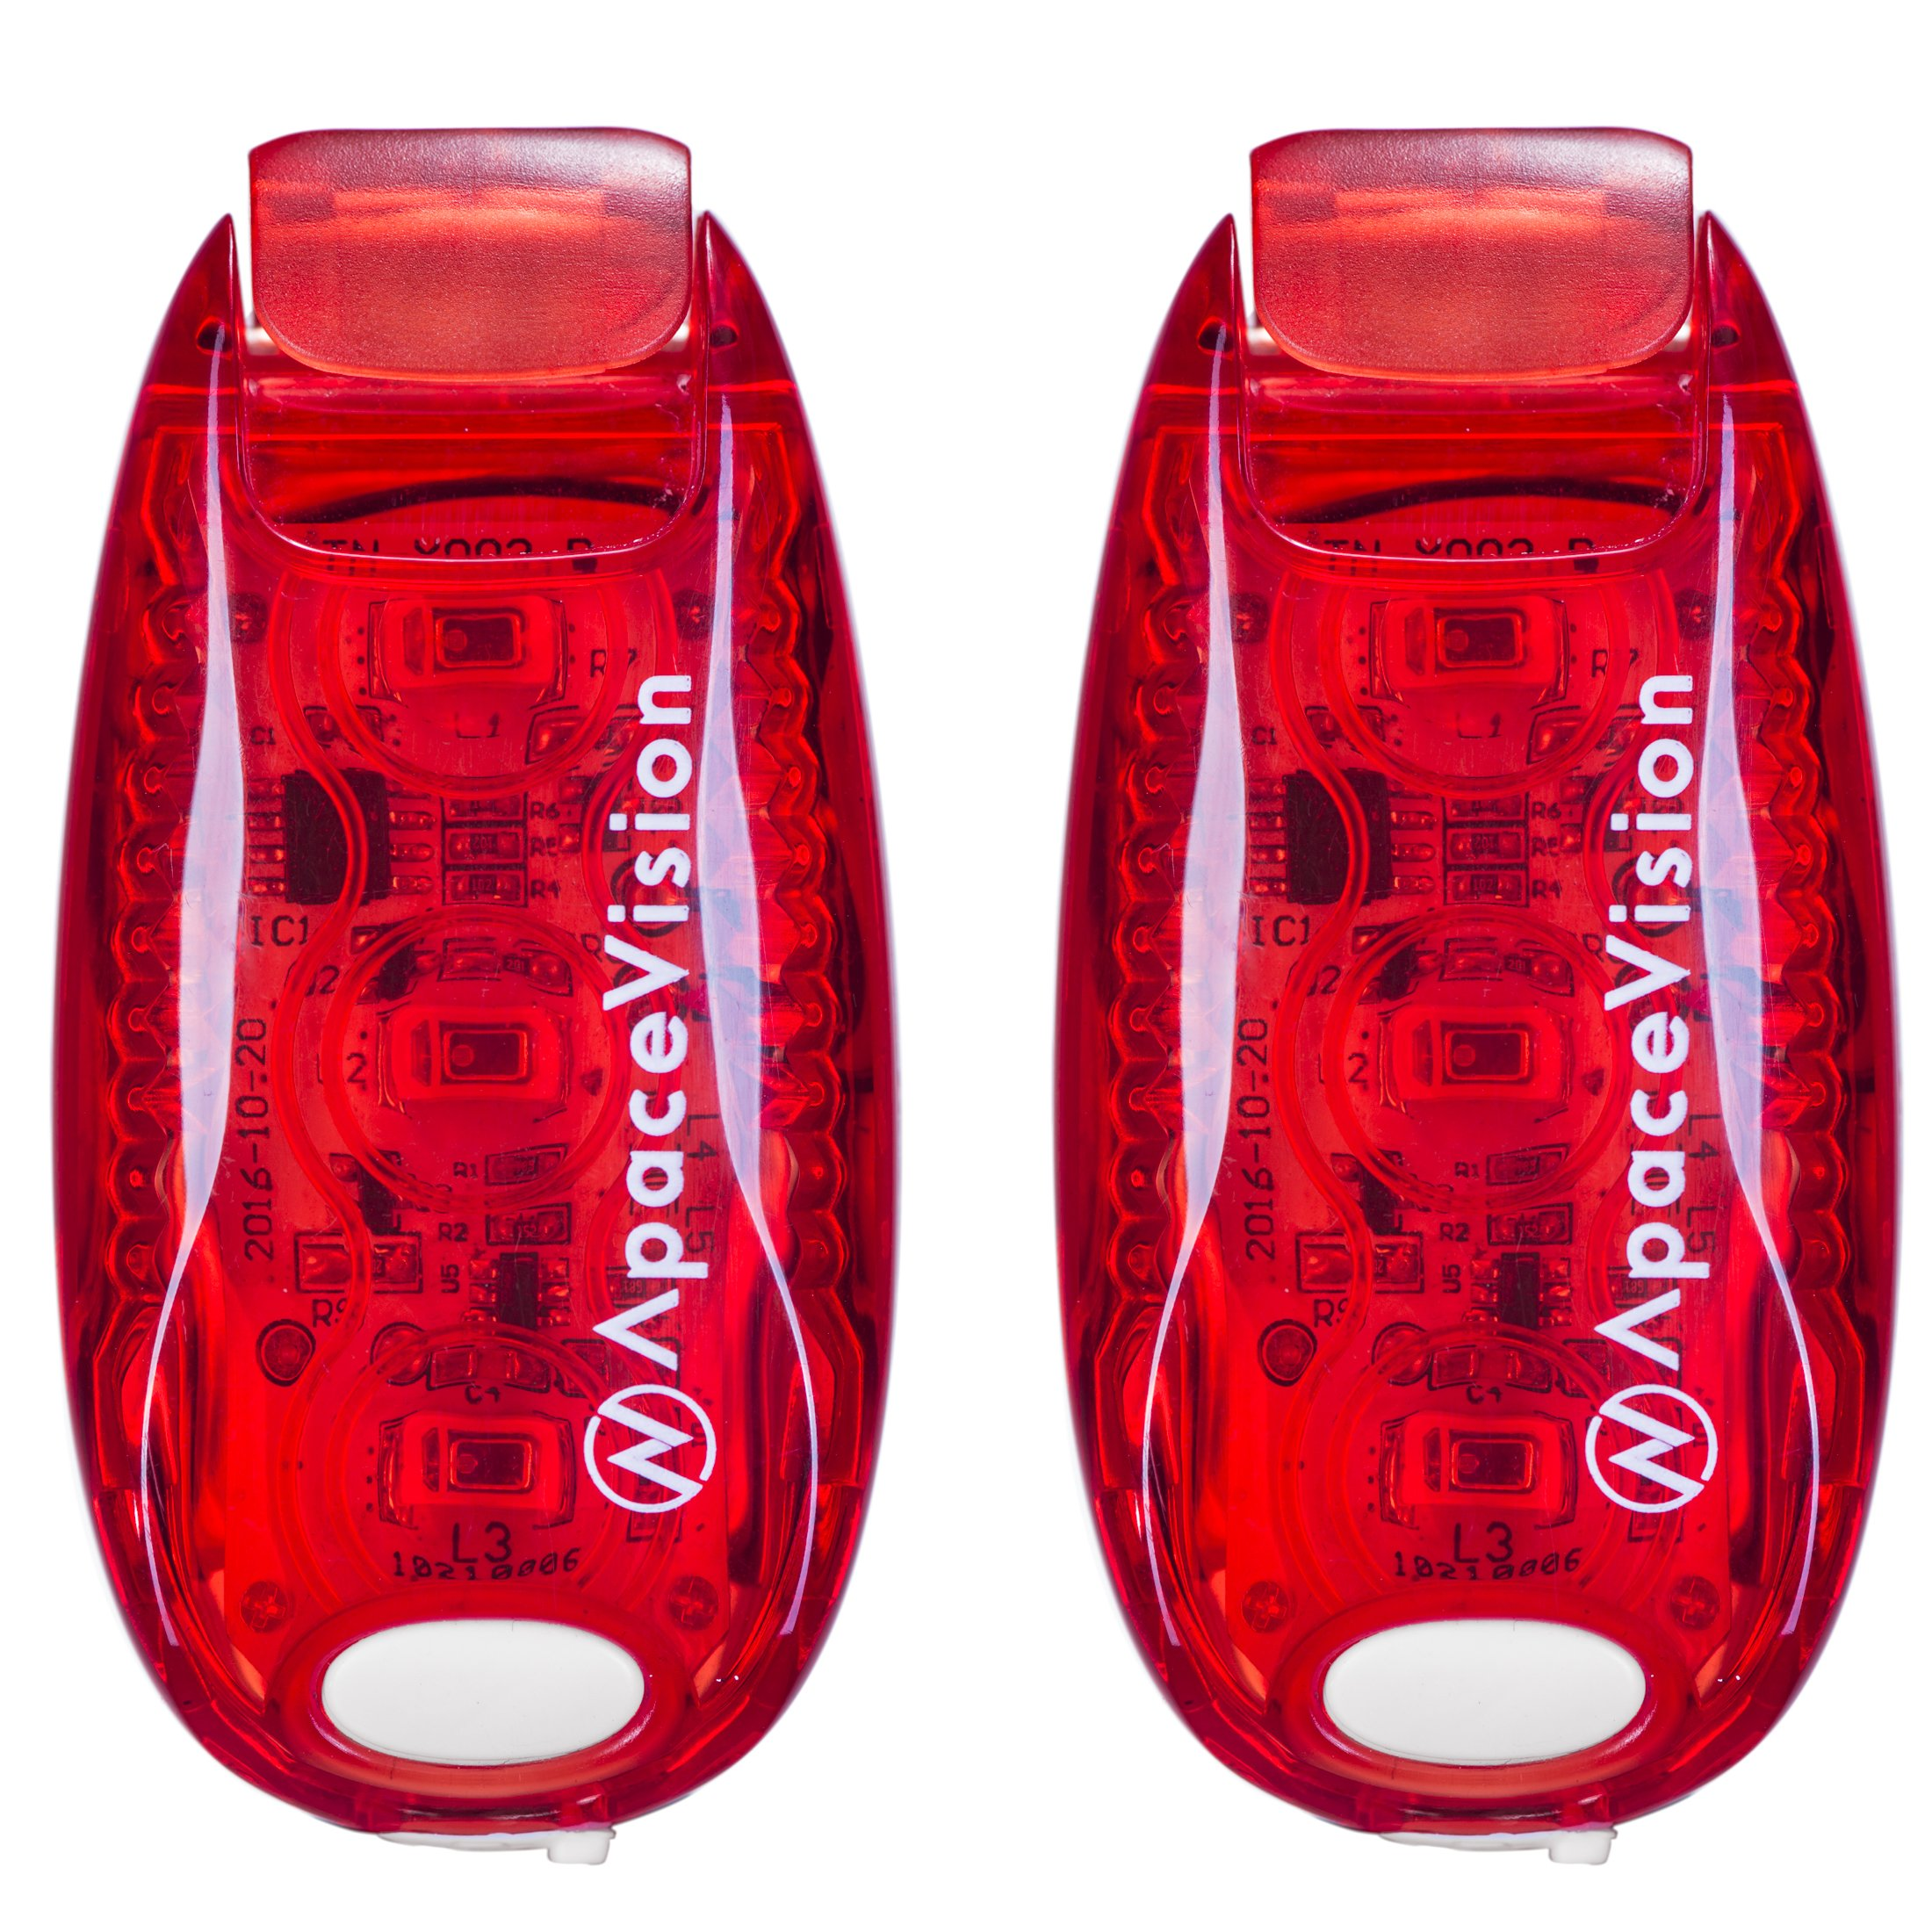 Everlightfx Usb Rechargeable Led Safety Light 2 Pack By